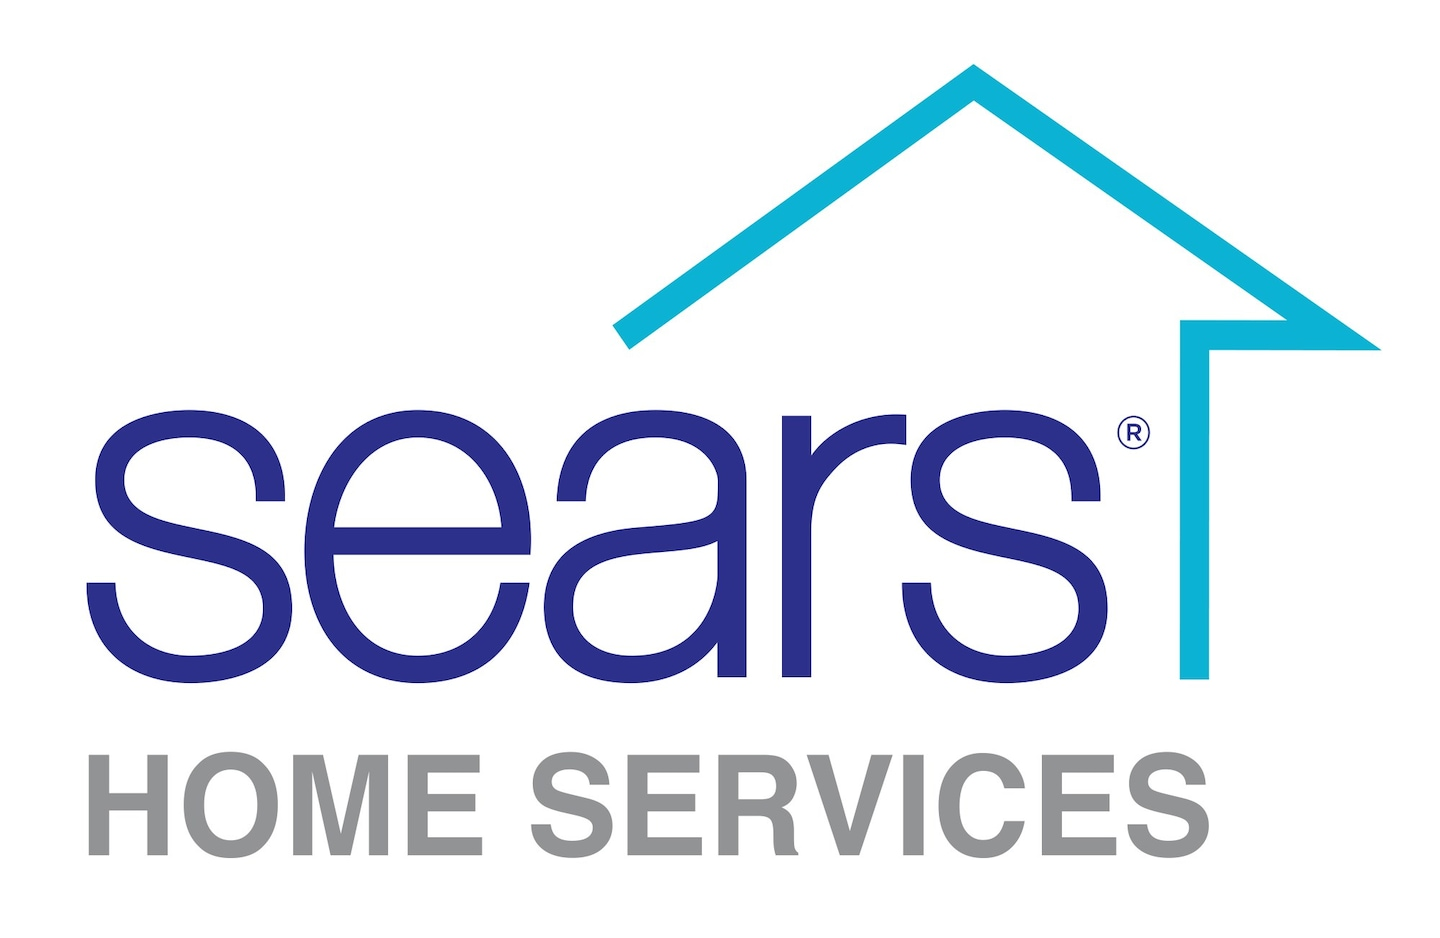 Sears Home Services